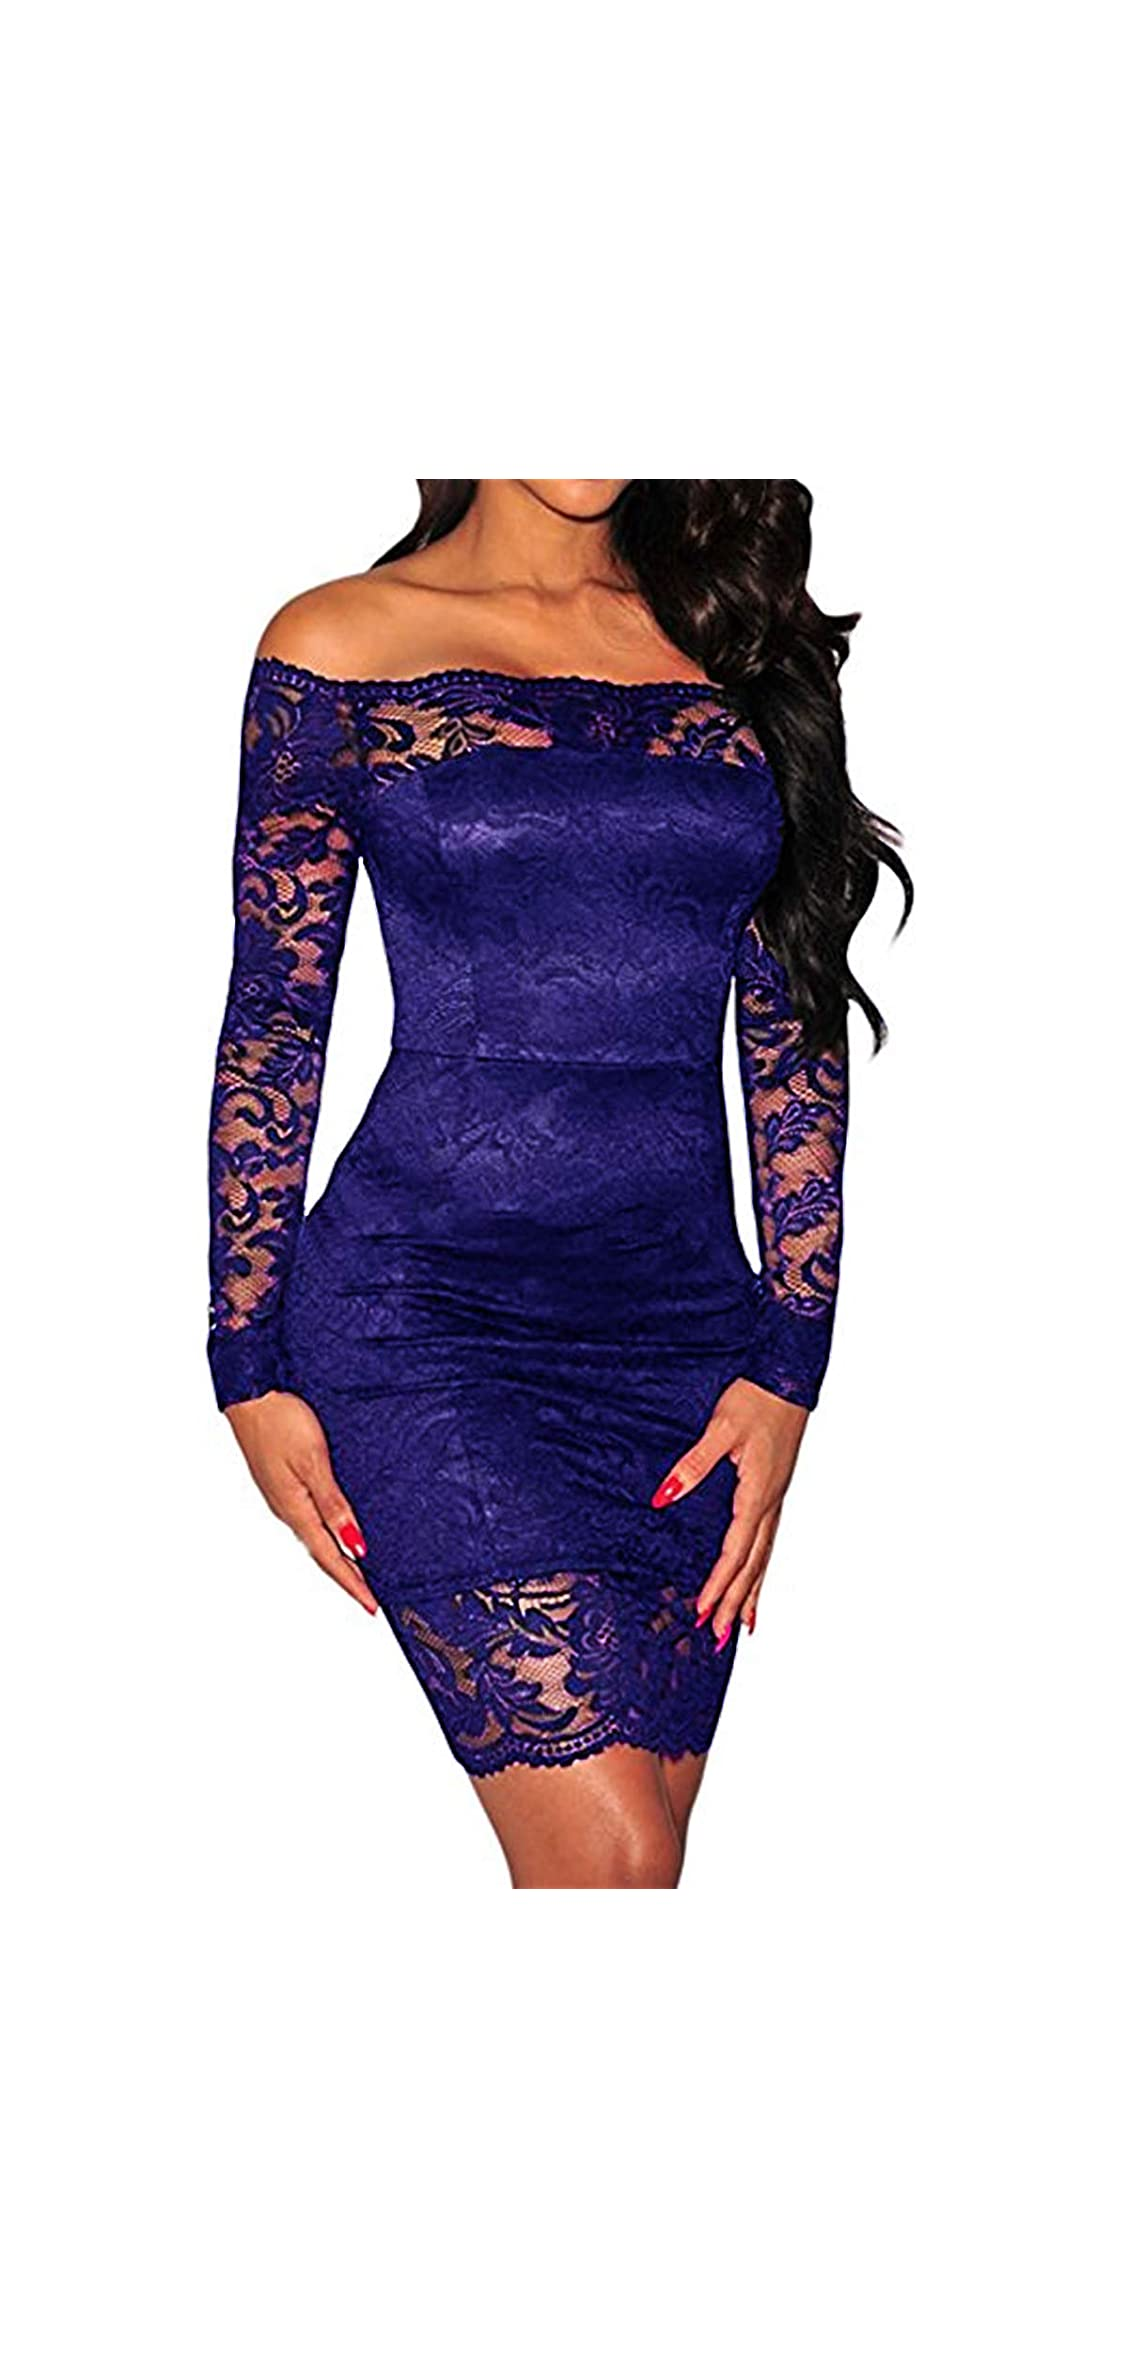 Women's Off Shoulder Sexy Lace Bodycon Elegant Cocktail